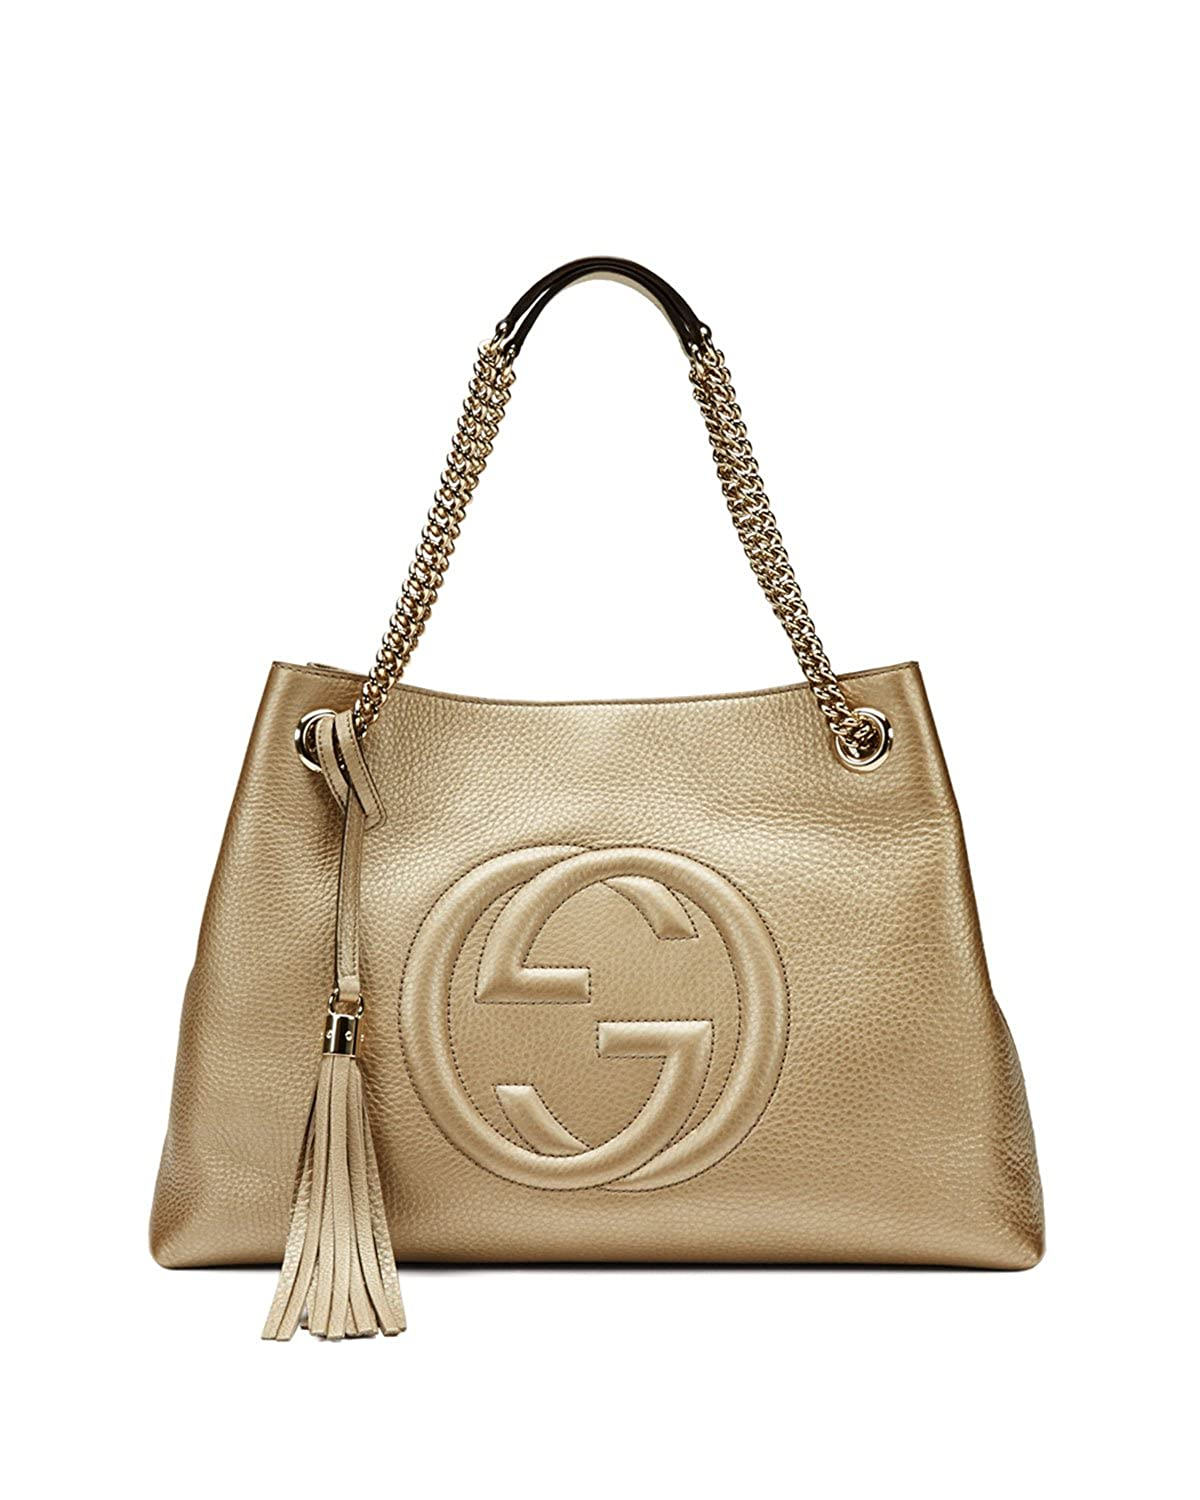 057e49cd9 Amazon.com: Gucci Soho Metallic Chain Medium Tote Golden Beige Leather New  Bag: Shoes